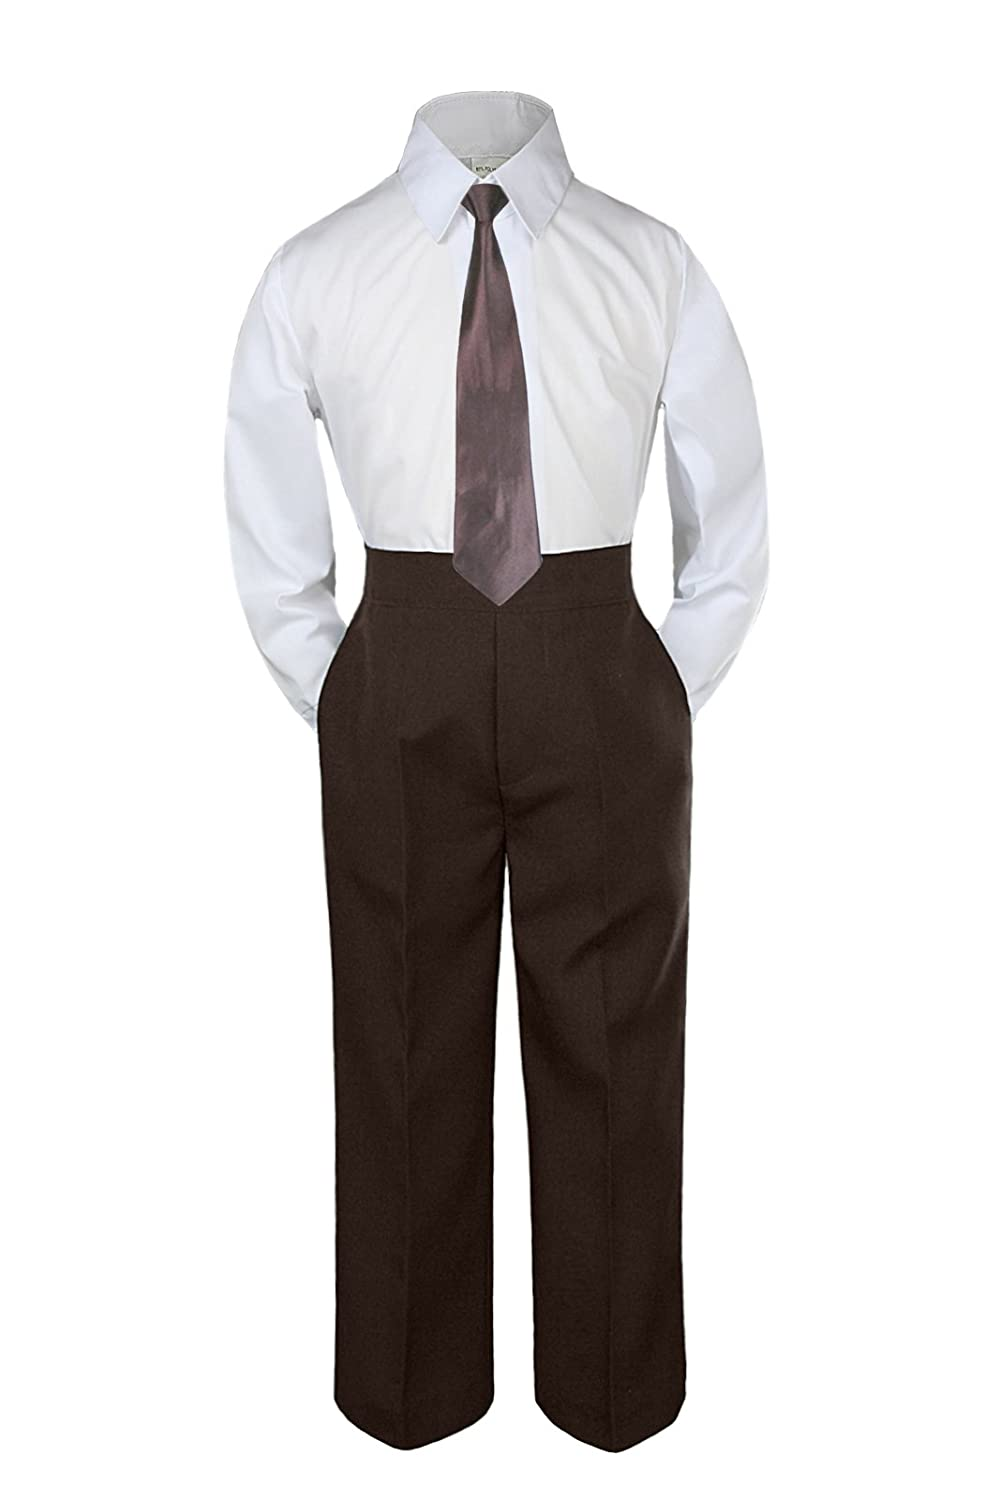 Leadertux 3pc Formal Baby Toddler Boys Brown Necktie Brown Pants Suits Sets S-7 3T